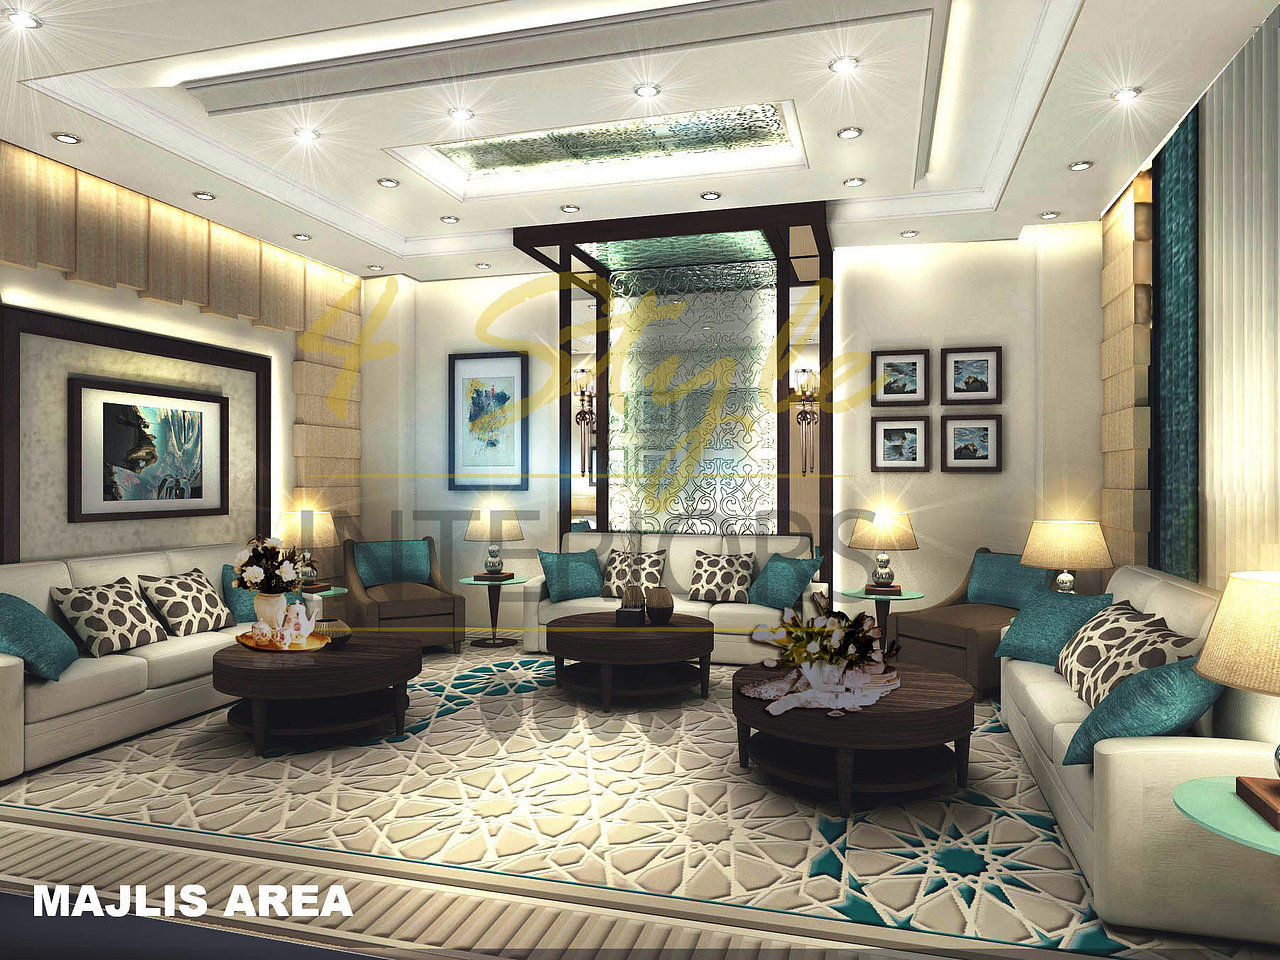 Abu dhabi picture browse info on abu dhabi picture Home interior design abu dhabi